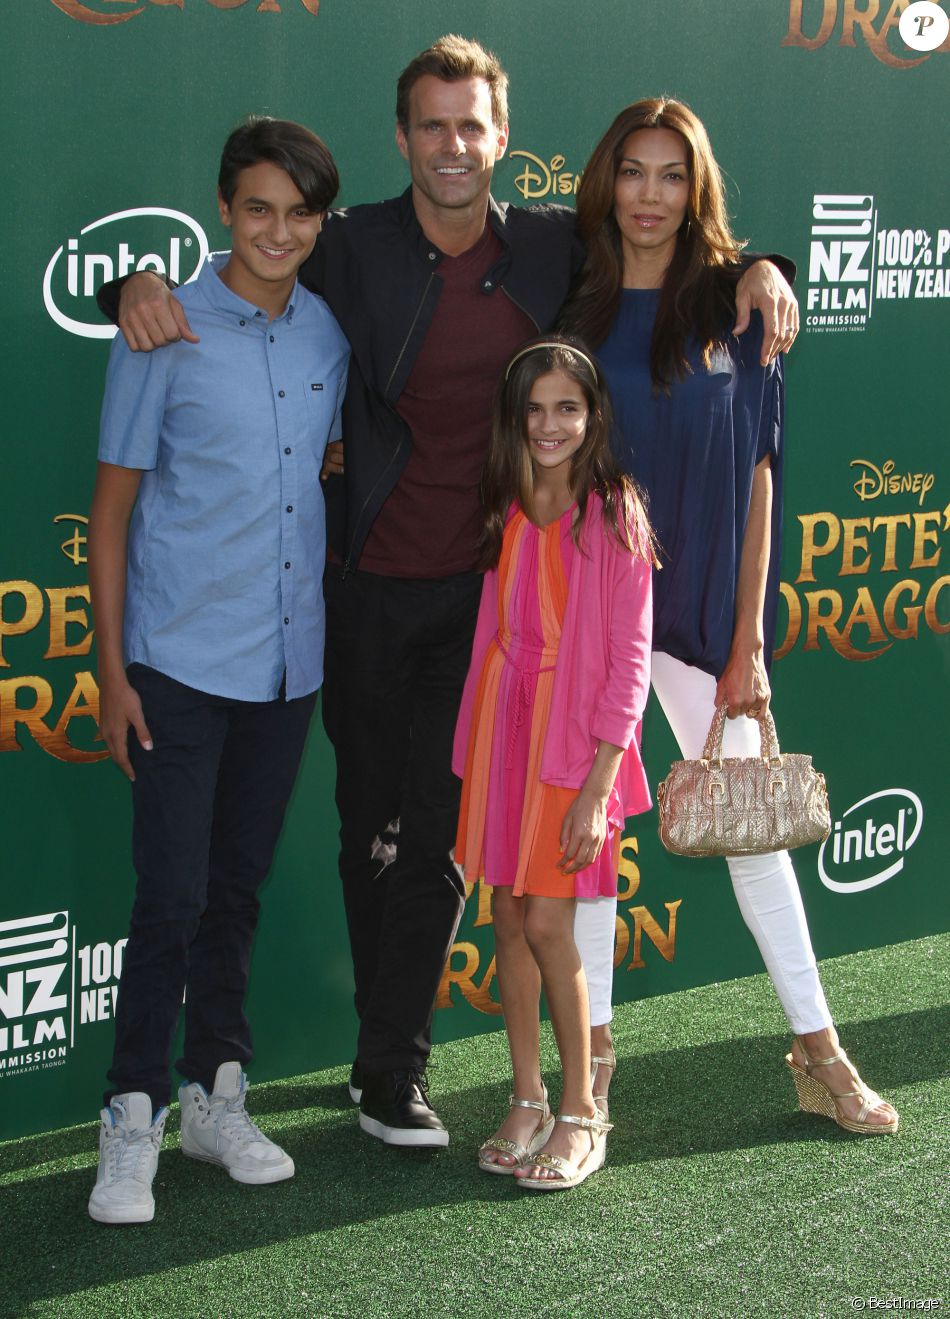 Vanessa Arevalo Bio Ethnicity Facts About Cameron Mathison S Wife Vanessa arevalo is a puerto rican business professional. vanessa arevalo bio ethnicity facts